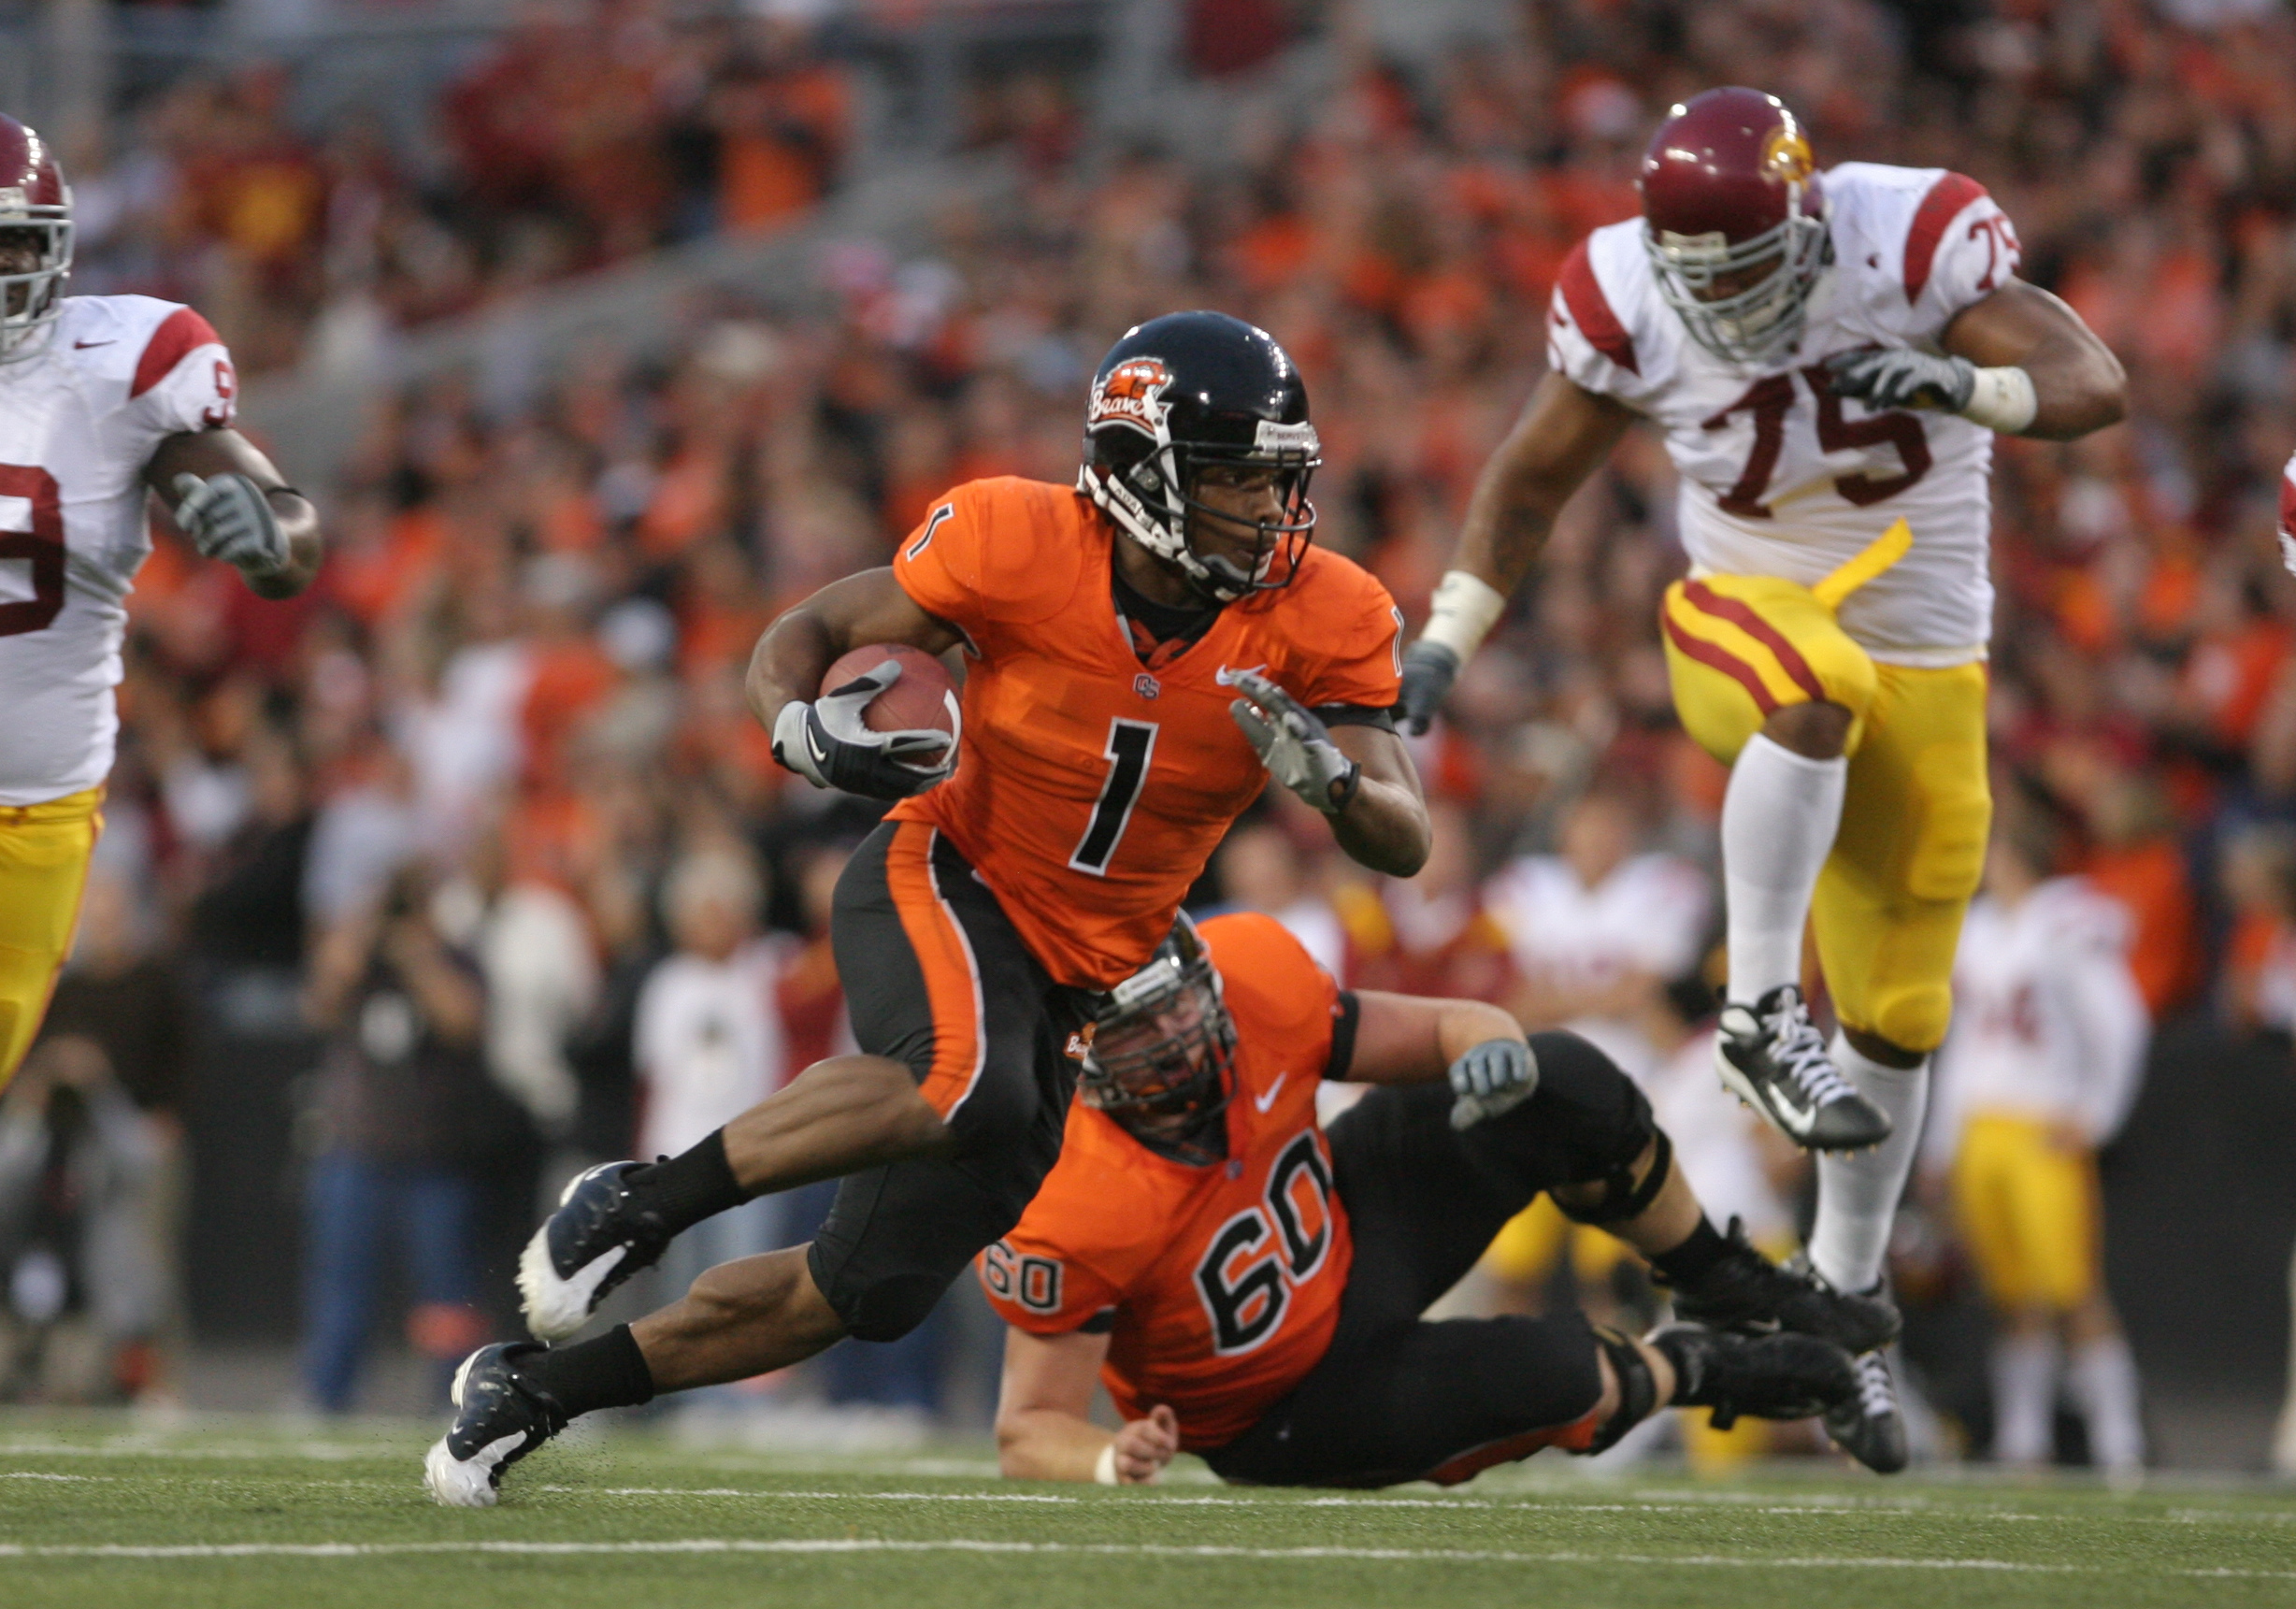 Football - NCAA - Oregon State vs. USC